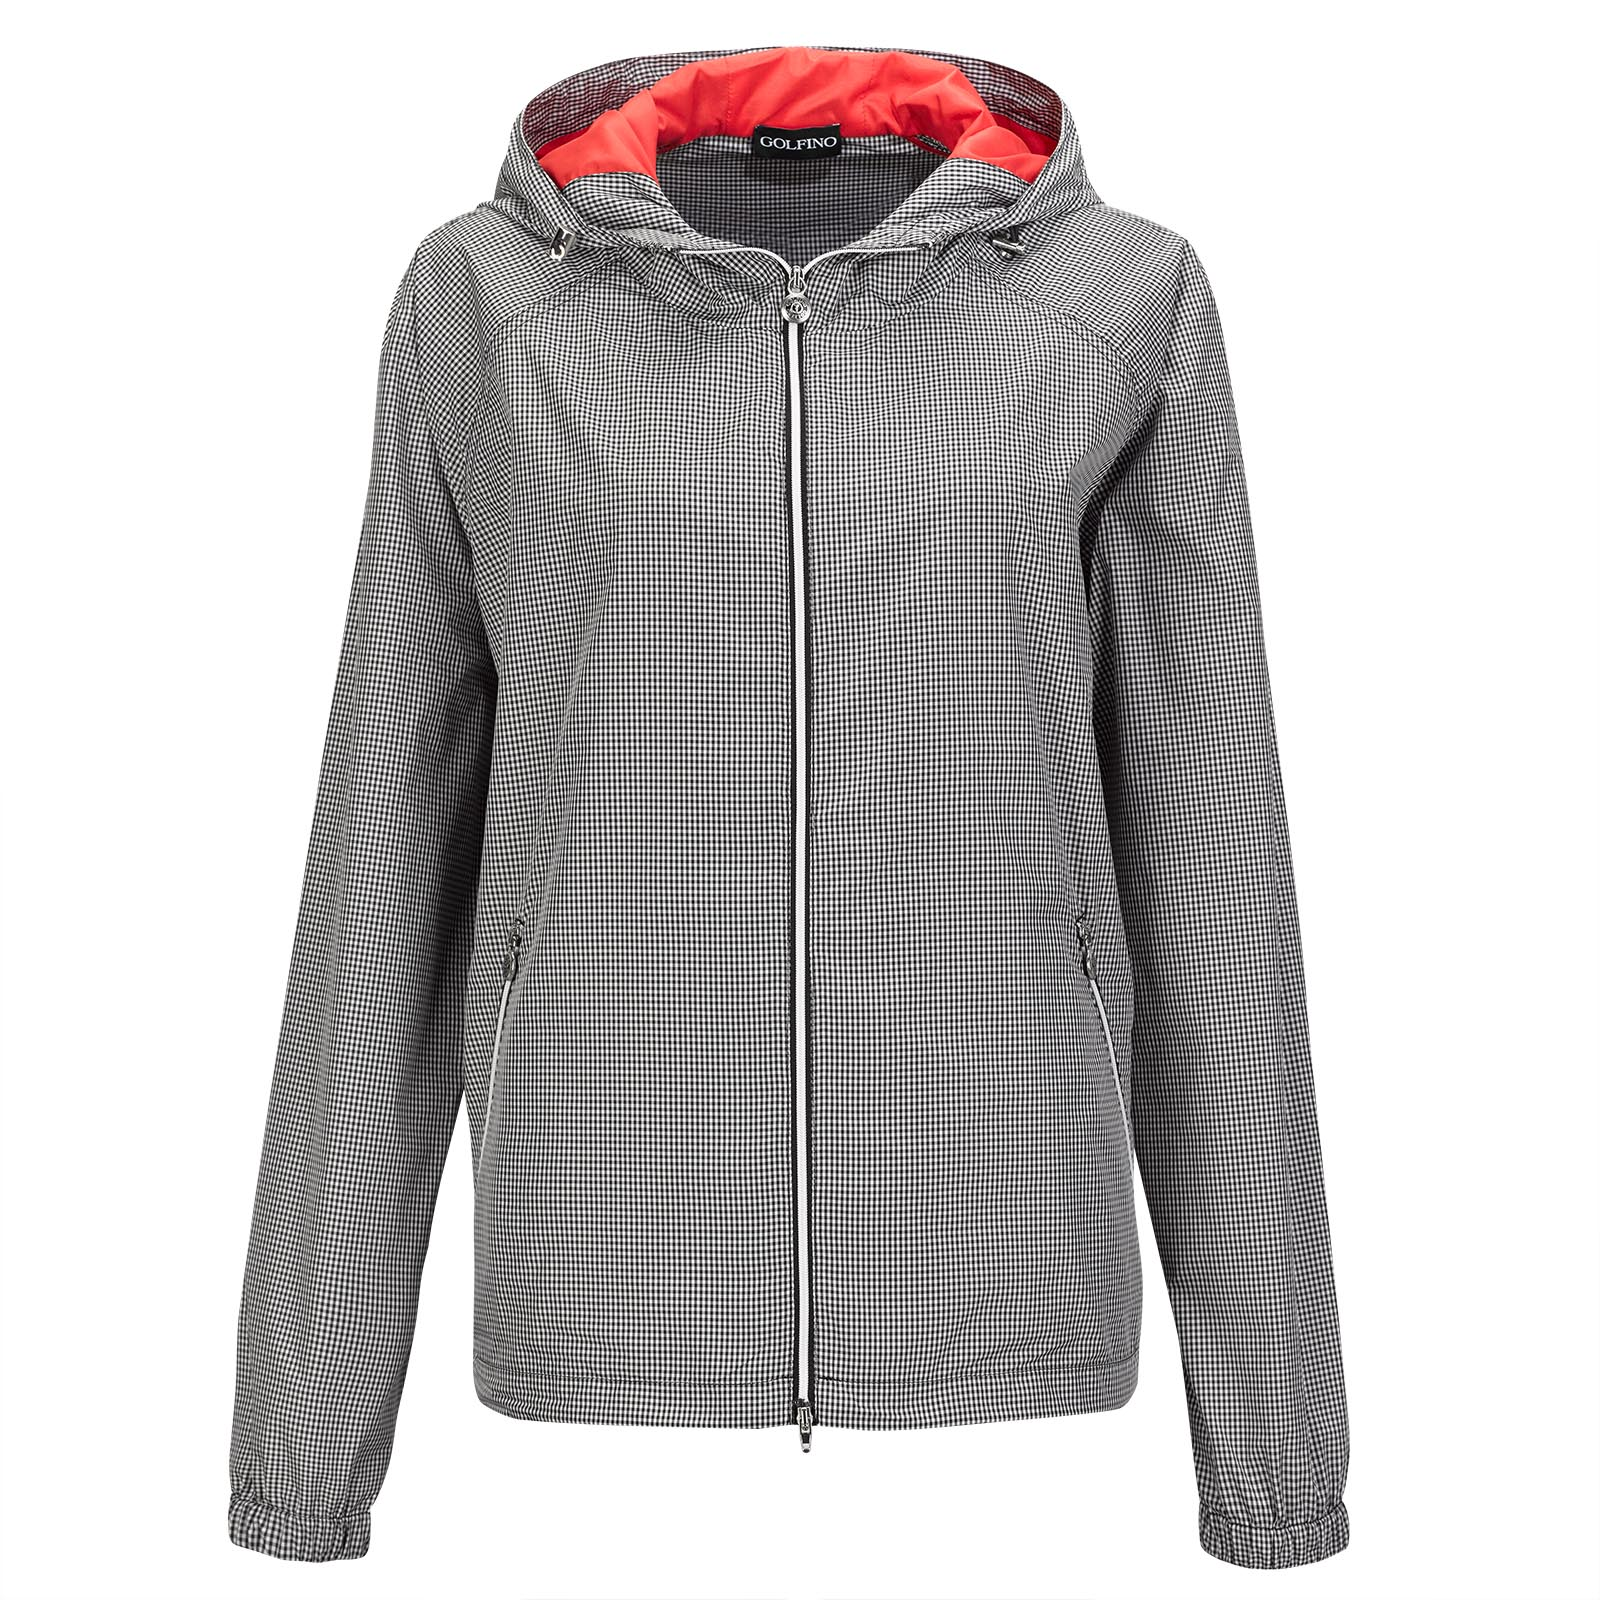 Wind Protection Ladies' golf jacket with Vichy pattern and hood